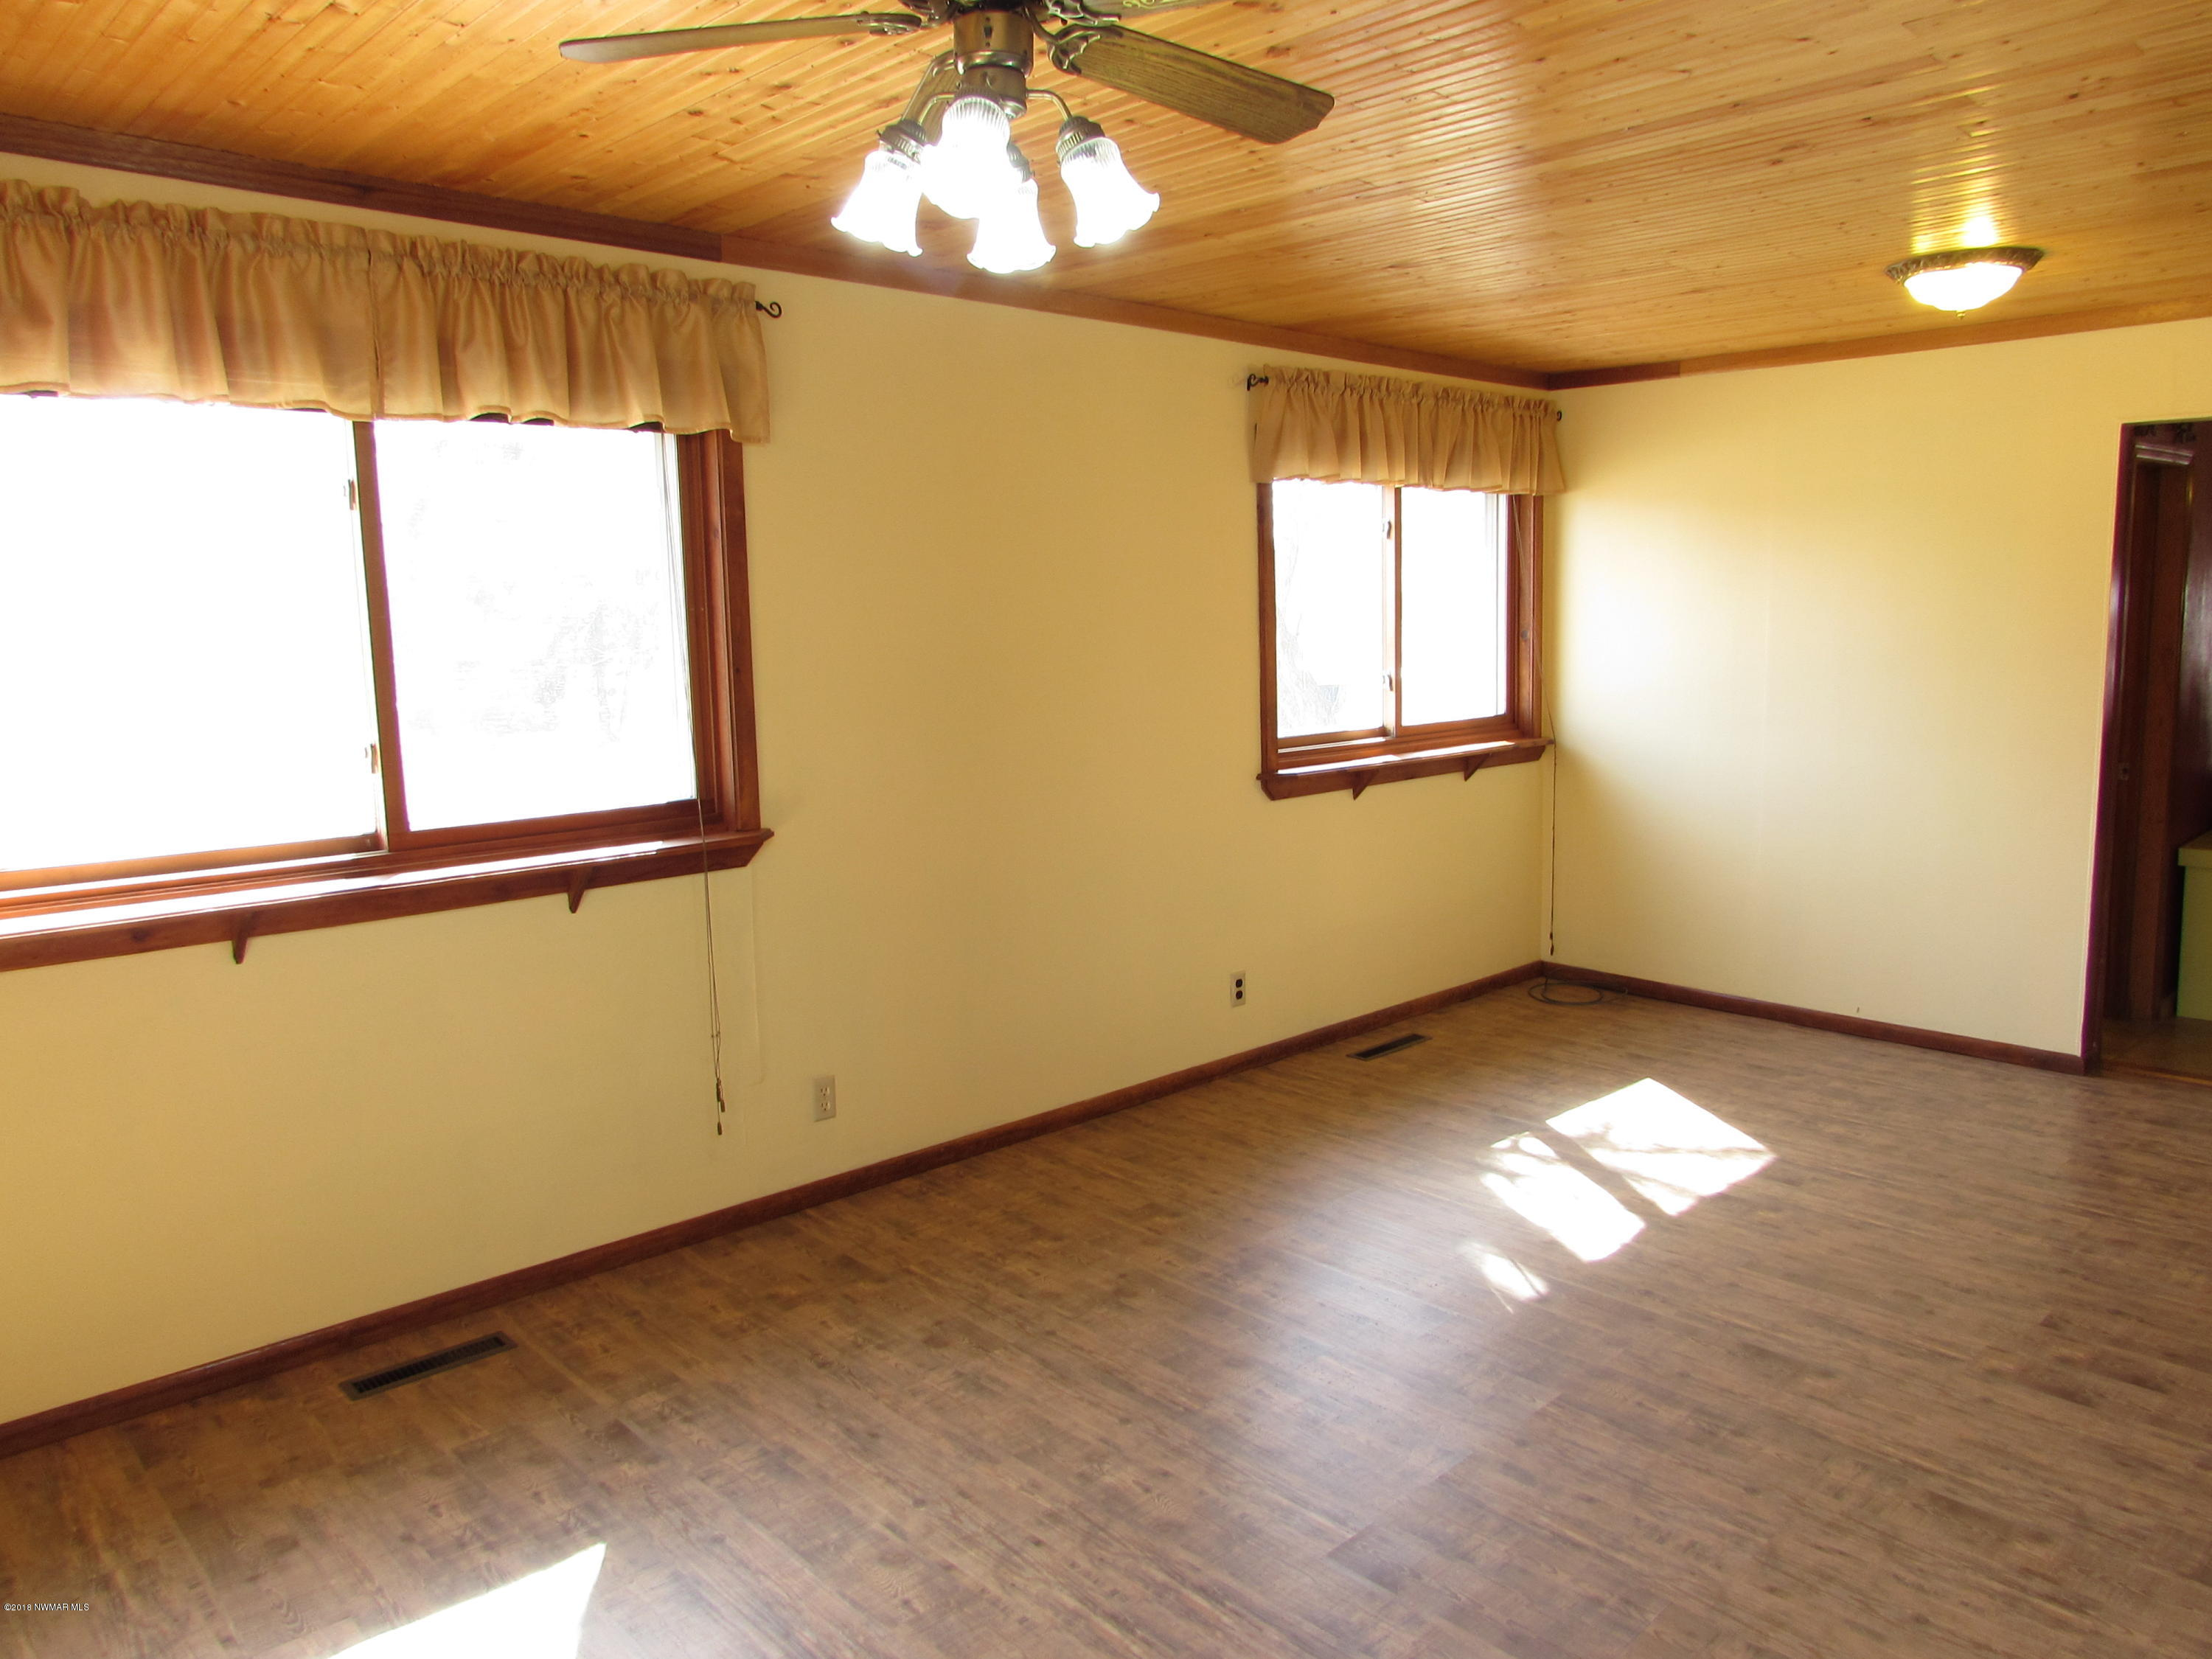 Living Room - View 4